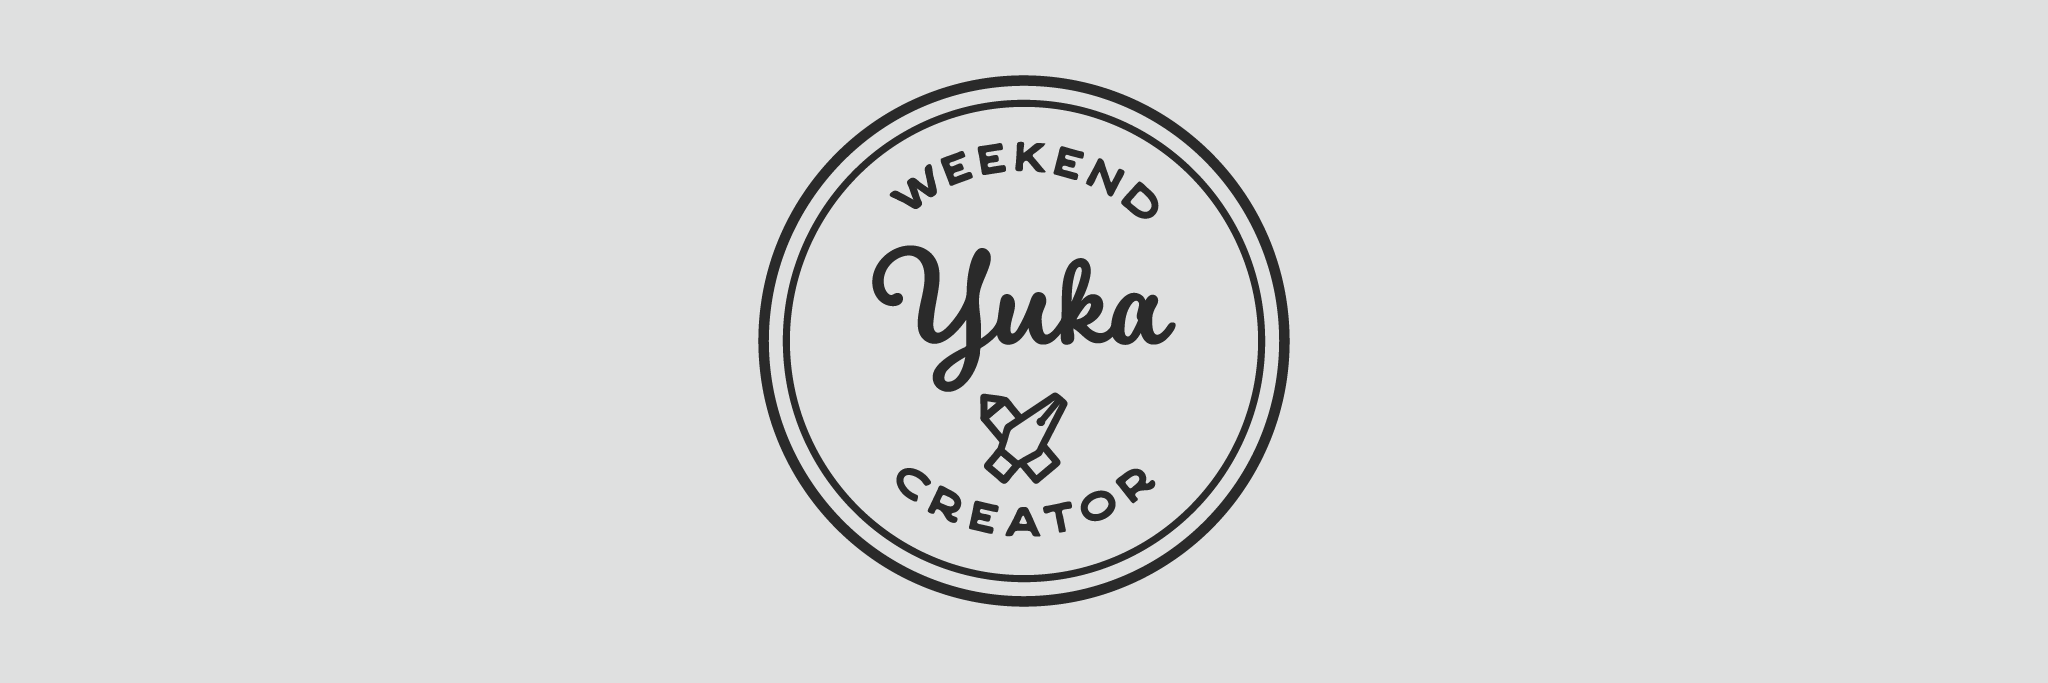 Weekend Creator Logo